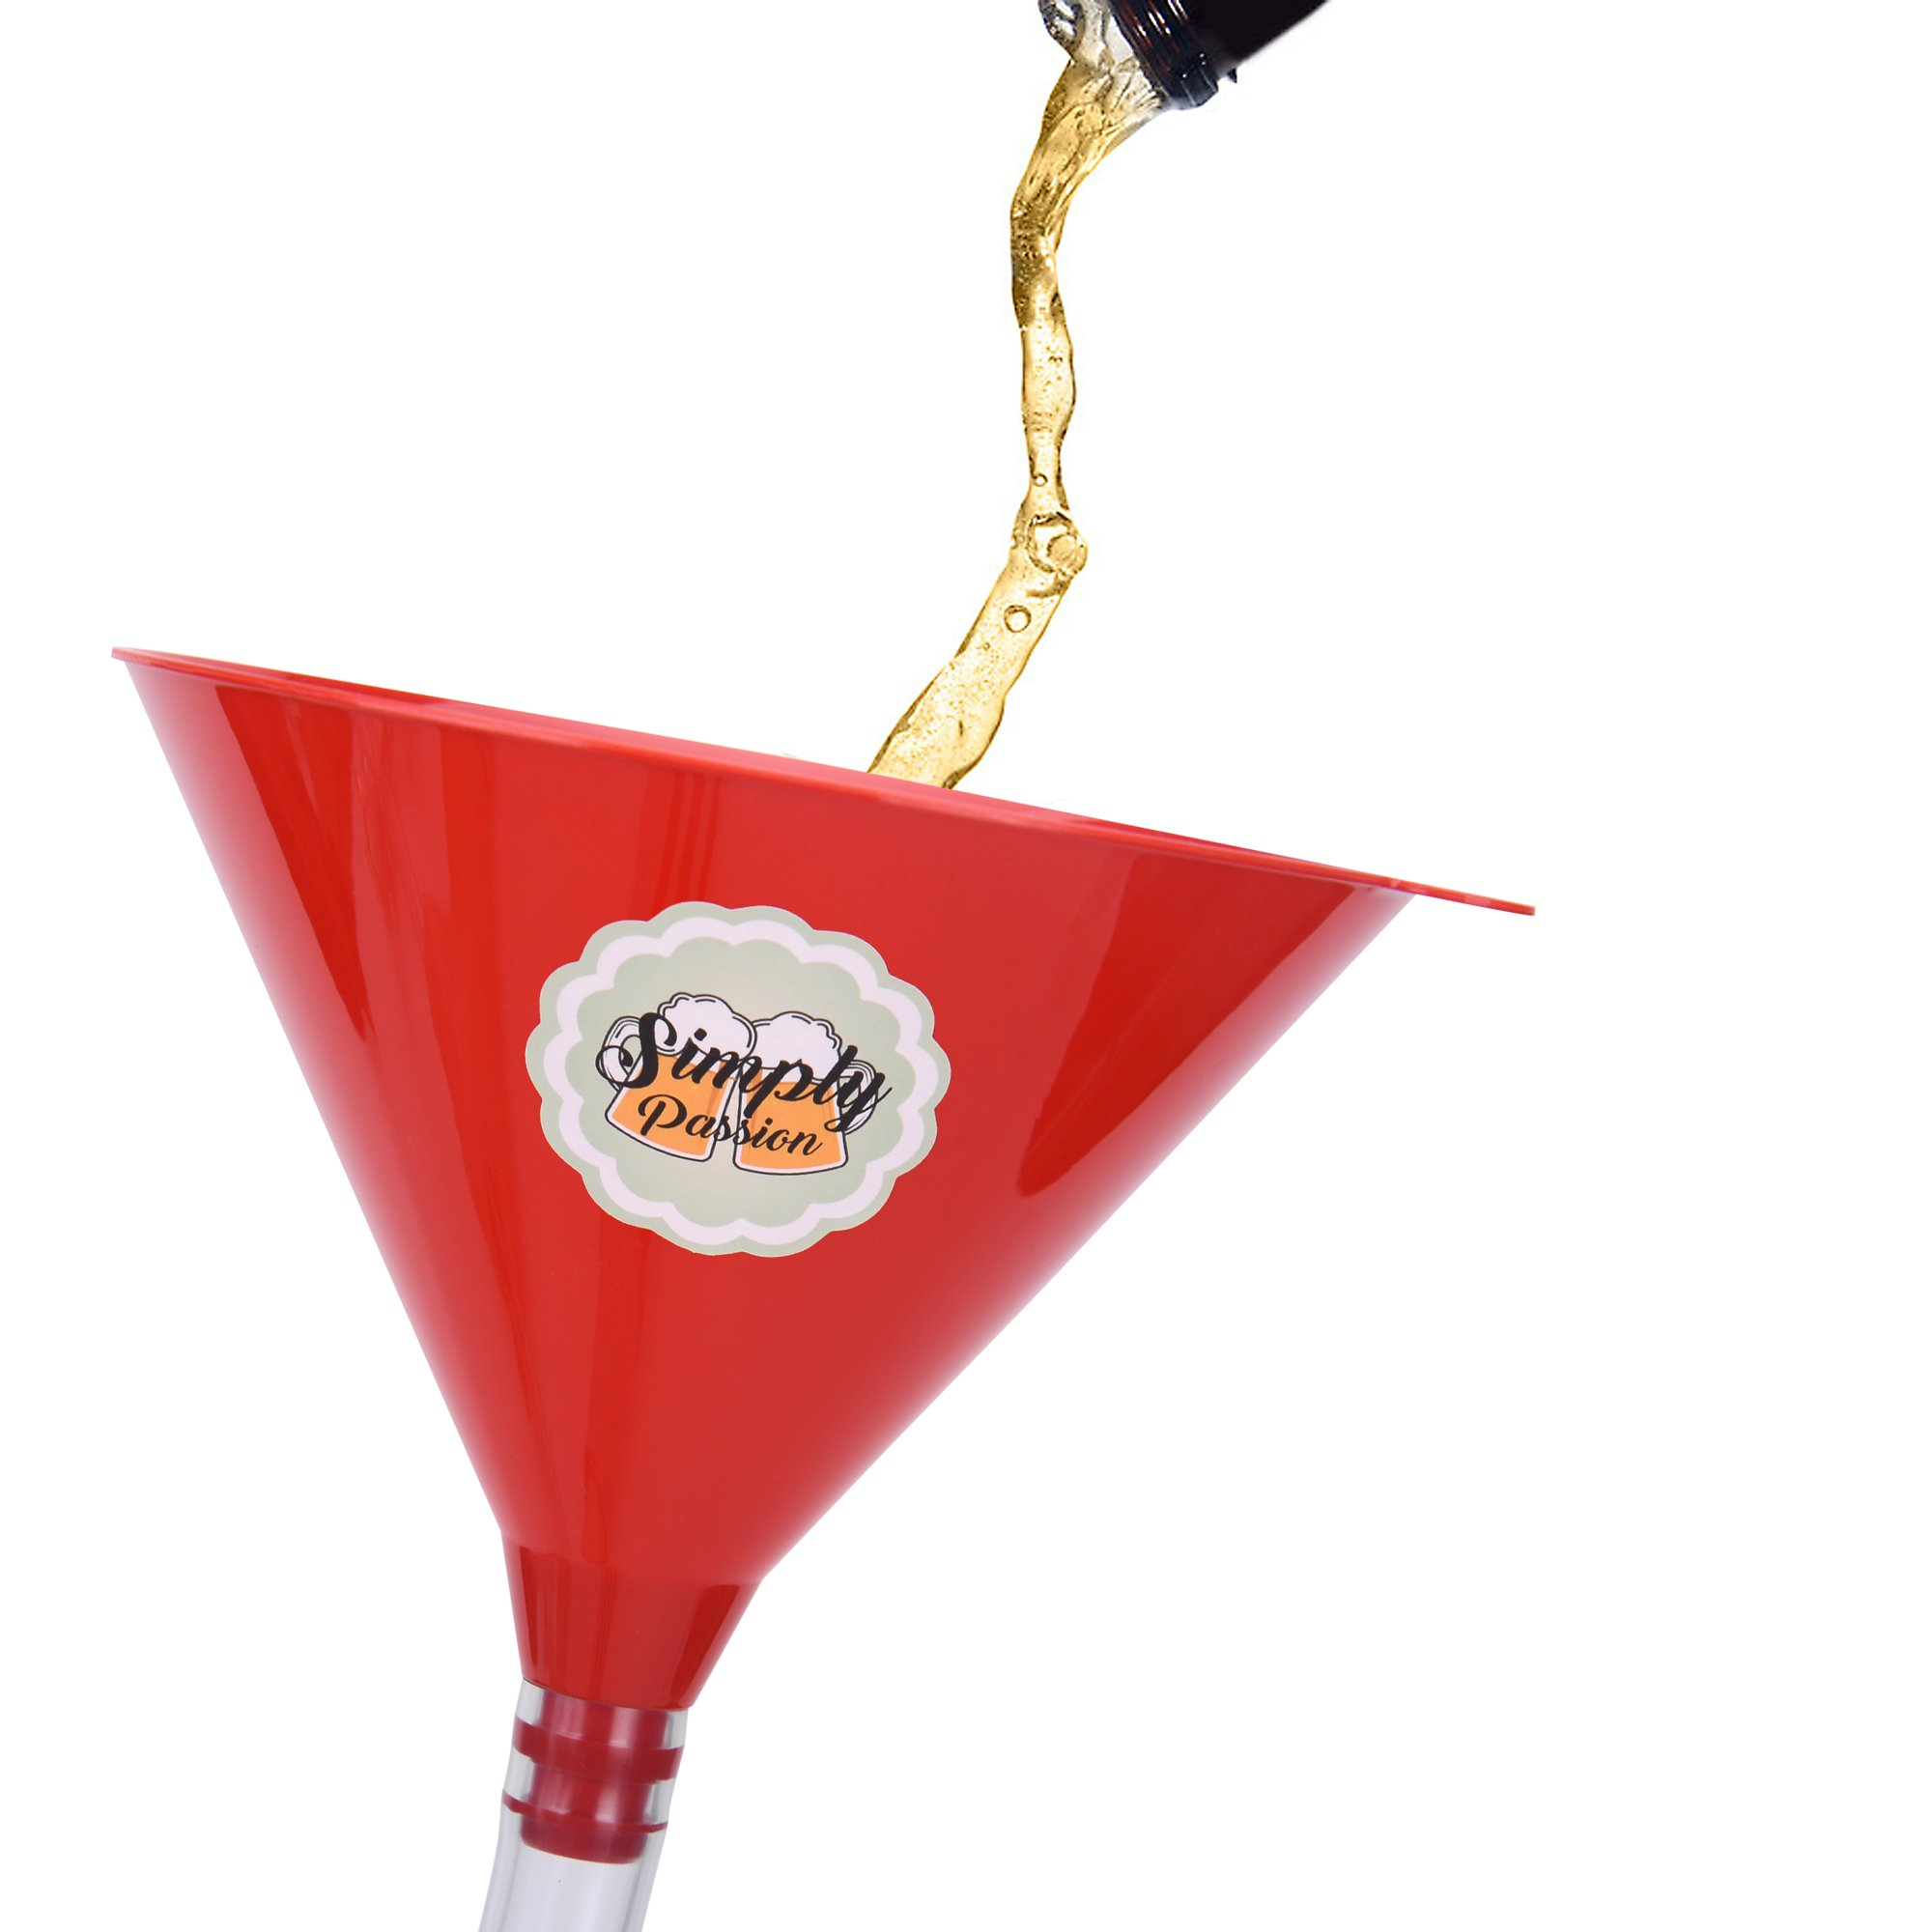 Beer Bong Funnel with Valve - 30 inch extra long thick tube & leak-proof valve - College, frat, spring break, gag gift - Drink like you mean it by Simply Passion (Image #4)